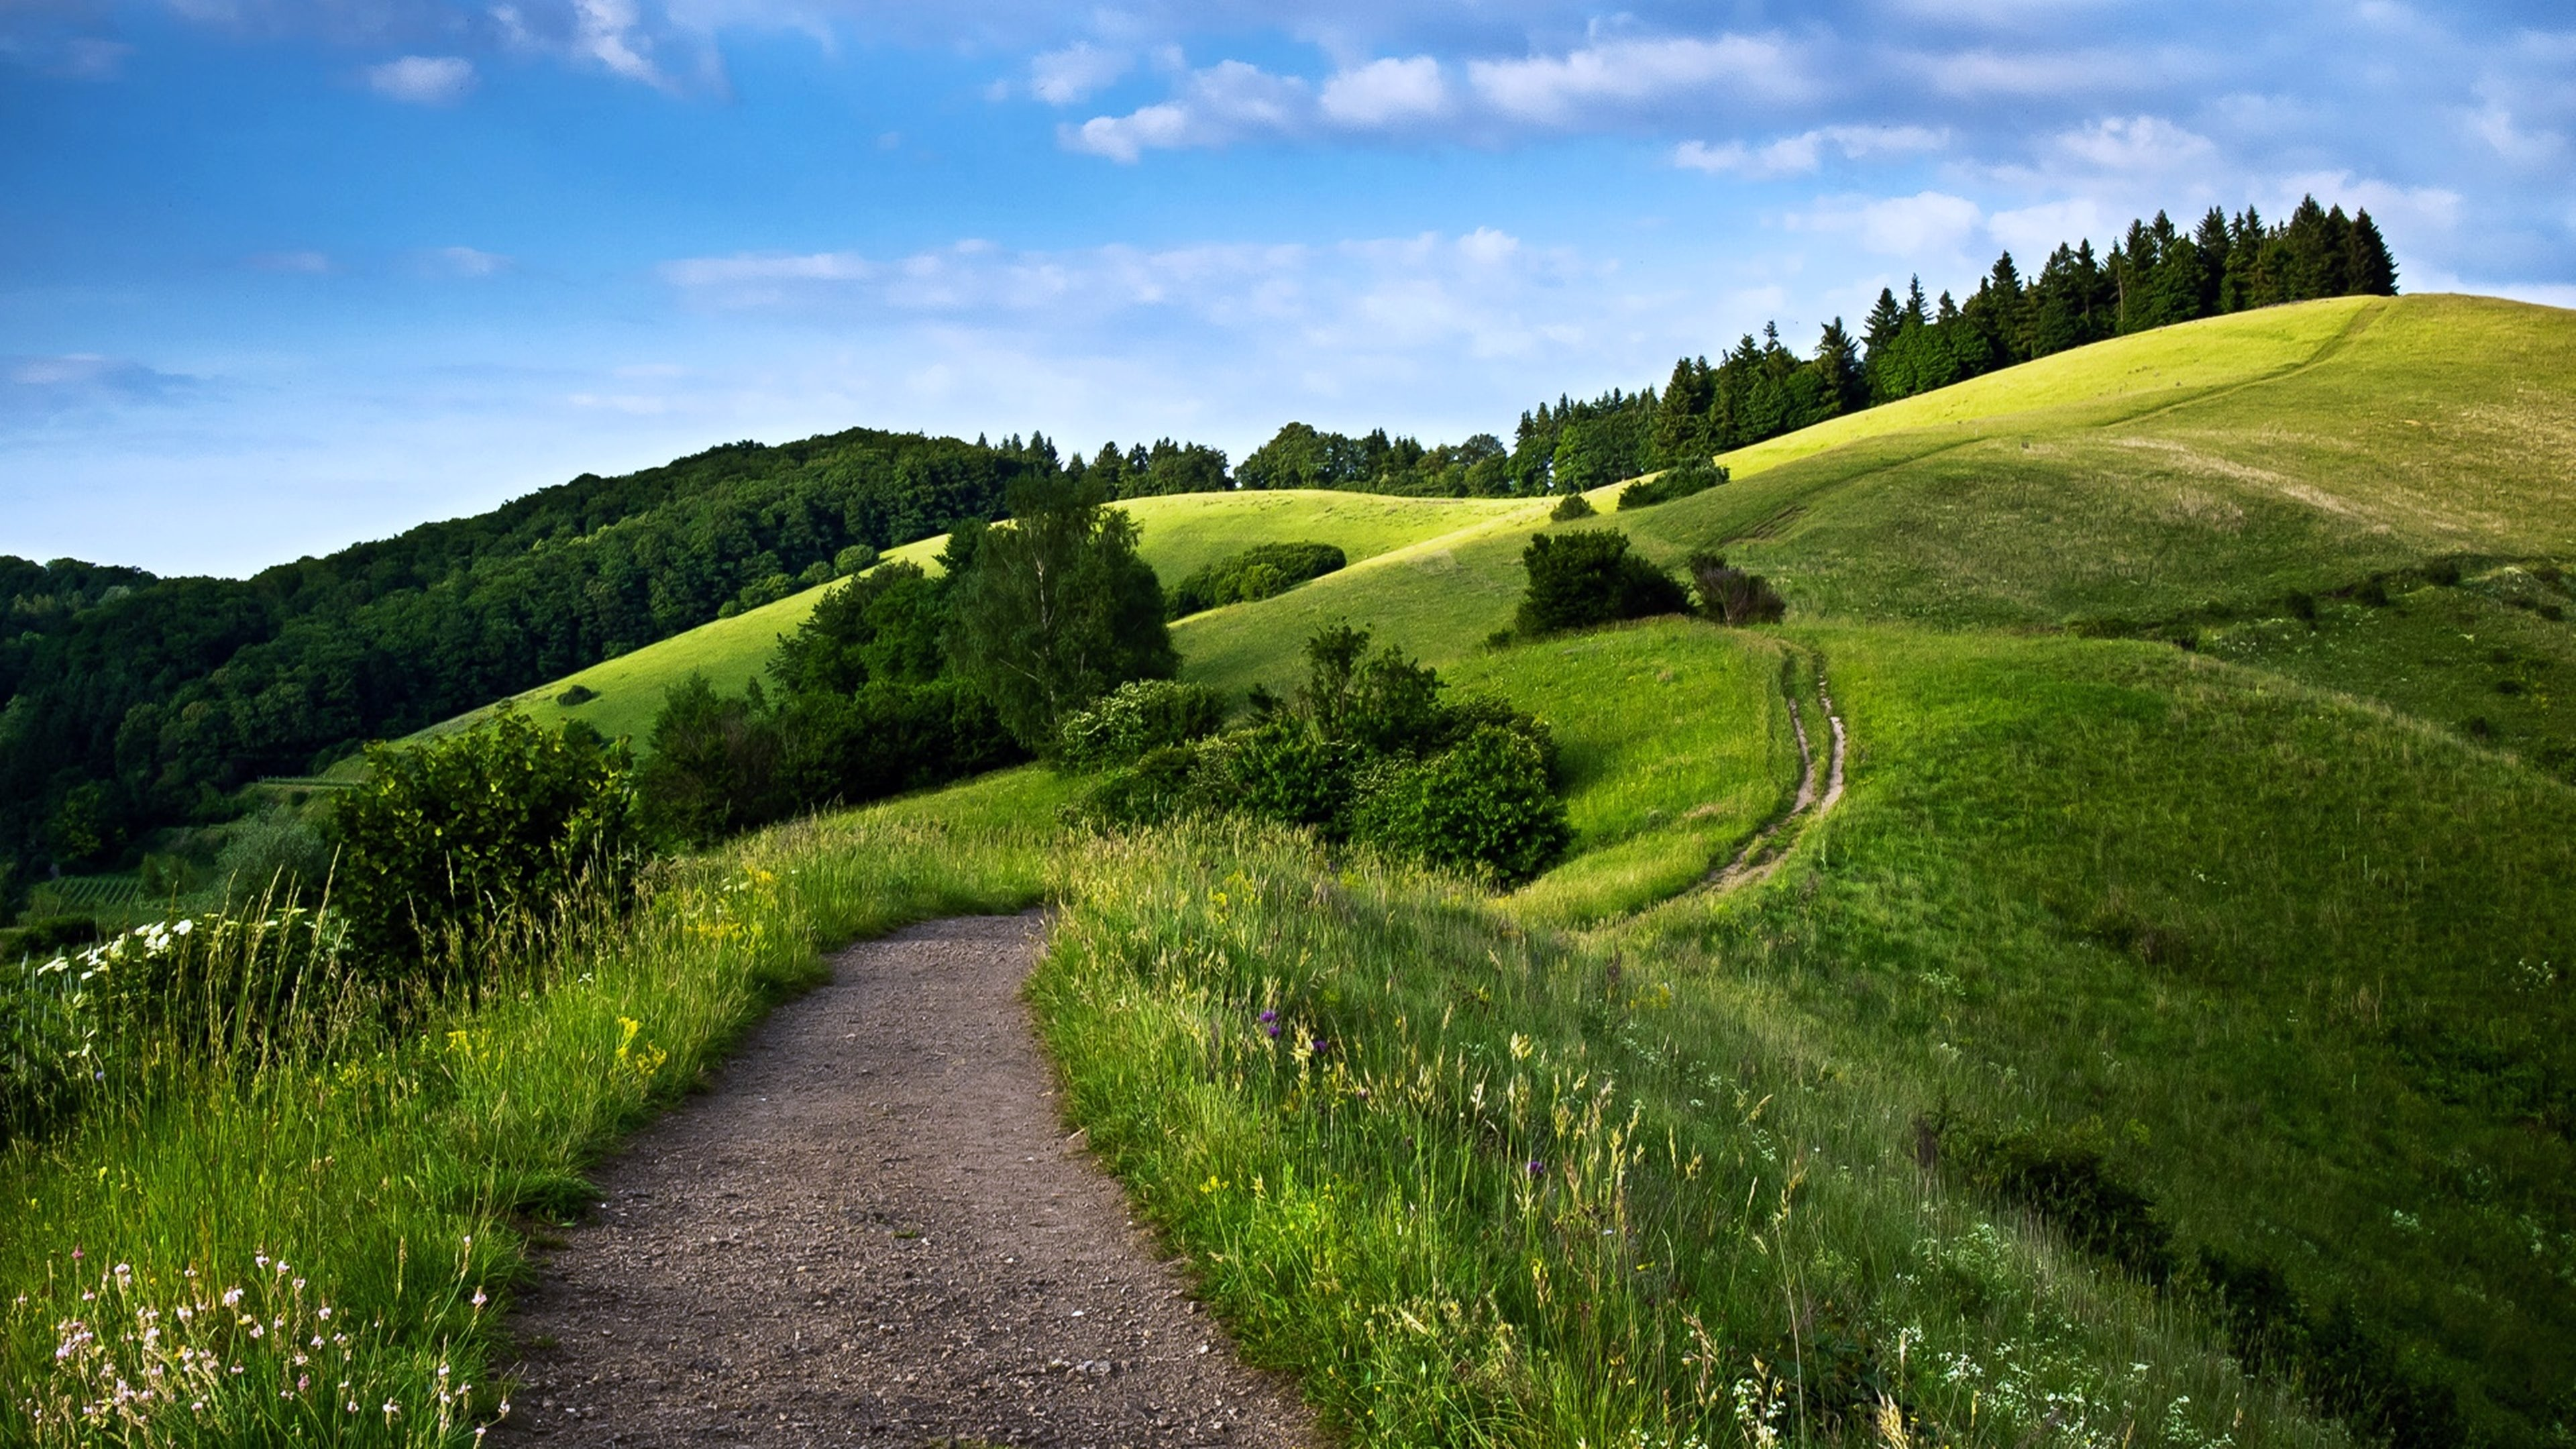 Path way landscape hills mountains forest green nature